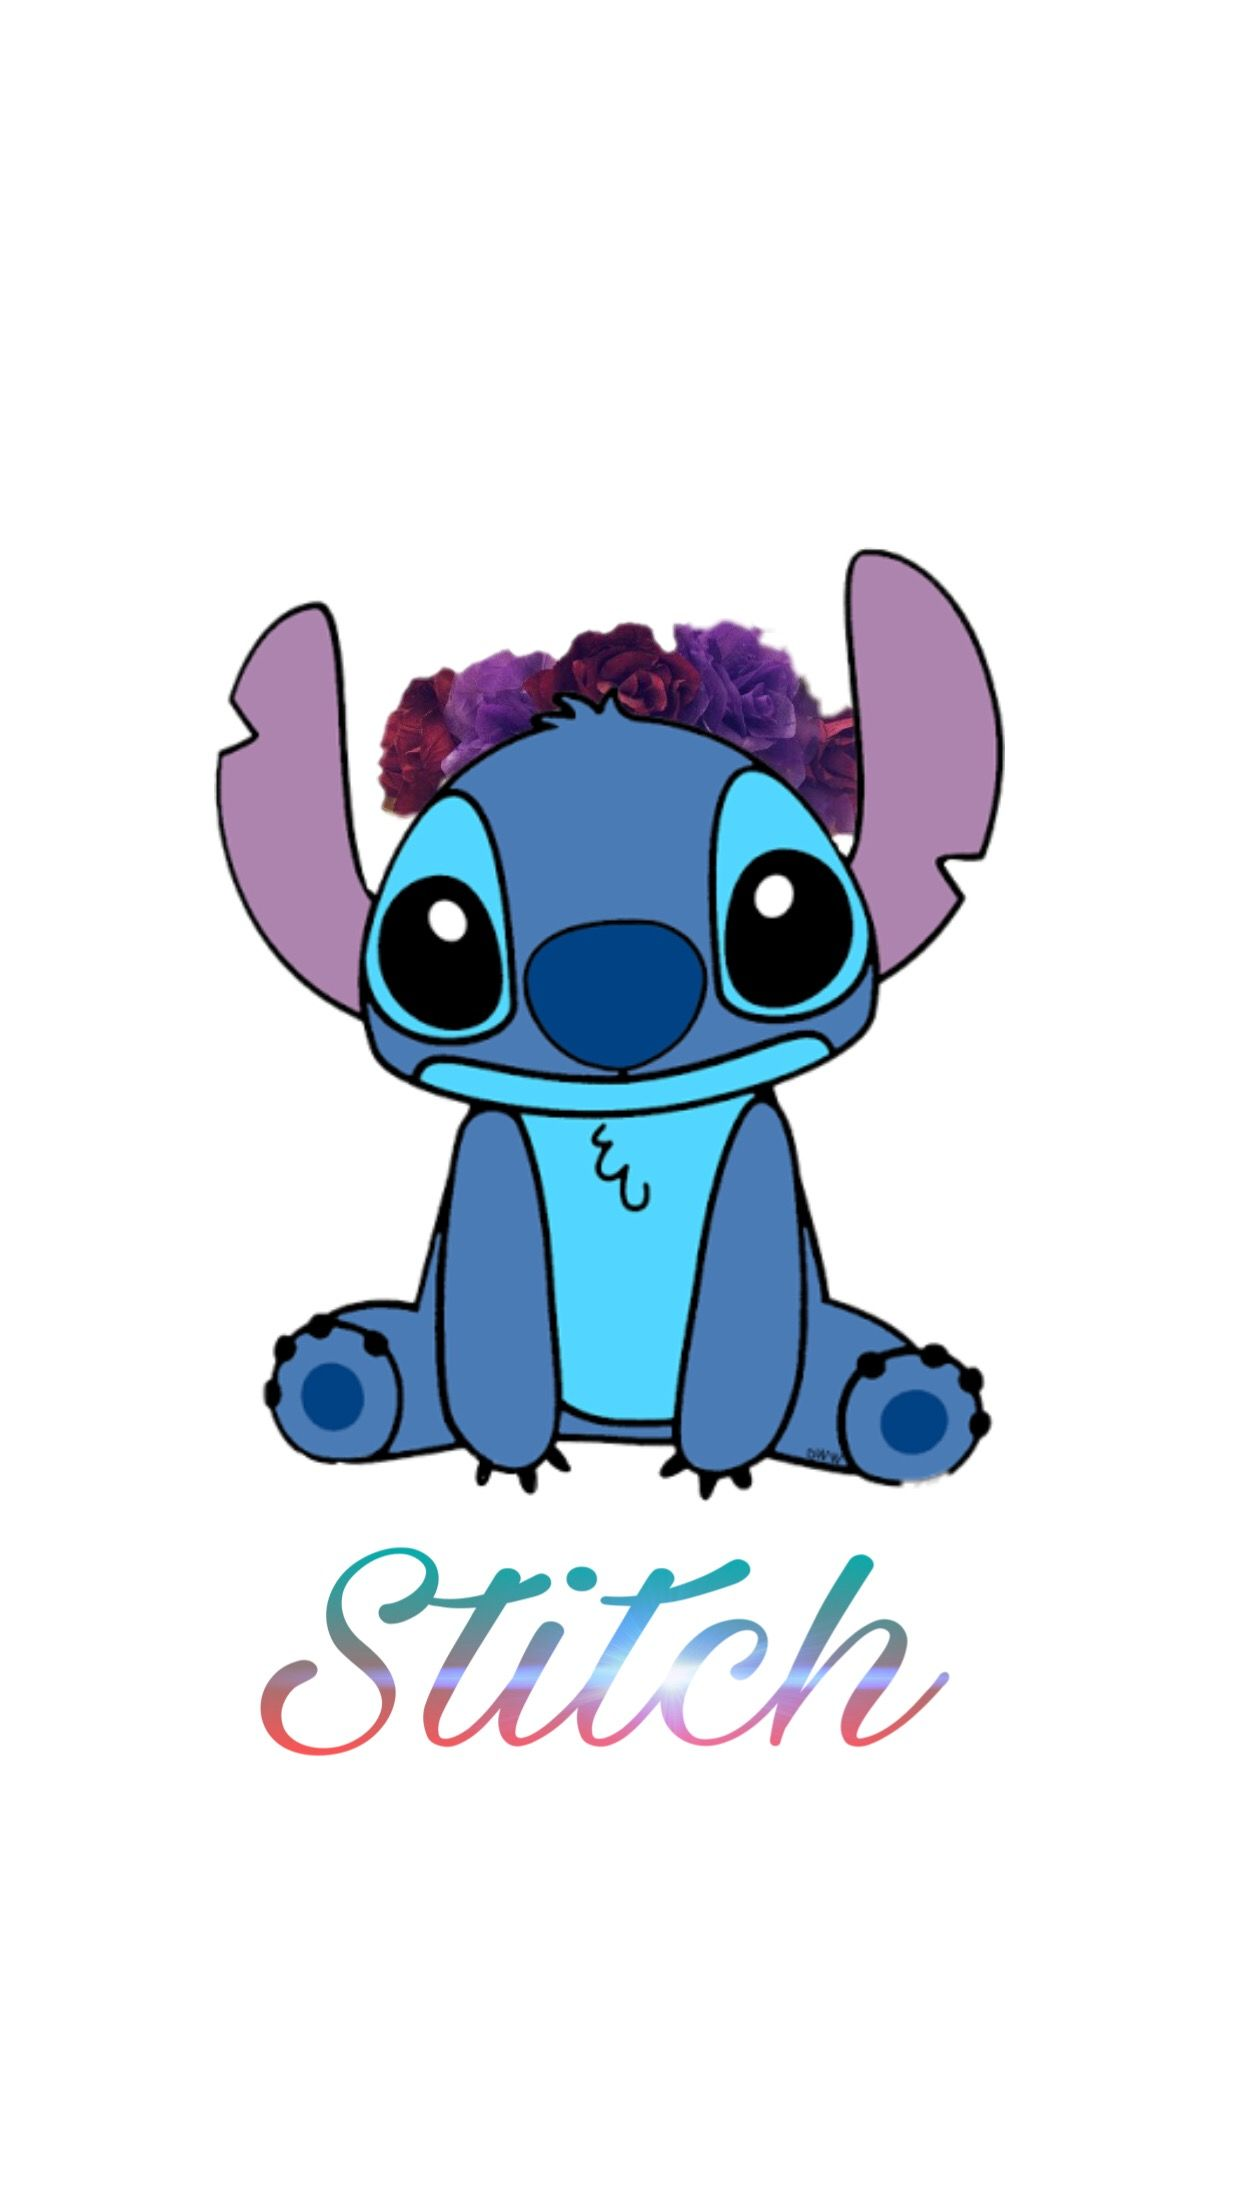 I M Cute Wallpaper De Desenhos Animados Lilo E Stitch Papel De